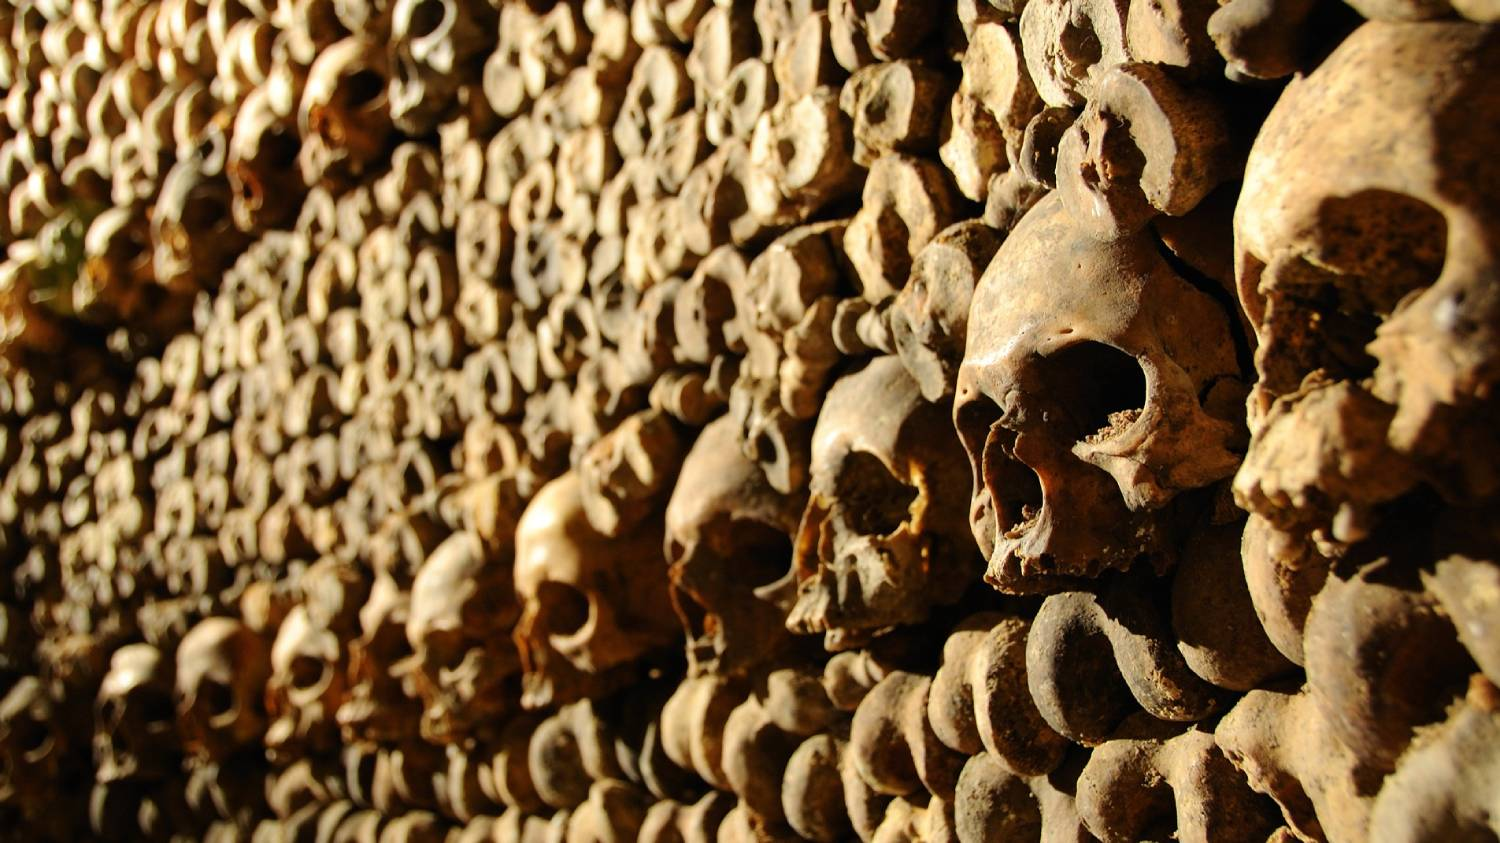 Paris Catacombs (Les Catacombes) - Things To Do In Paris